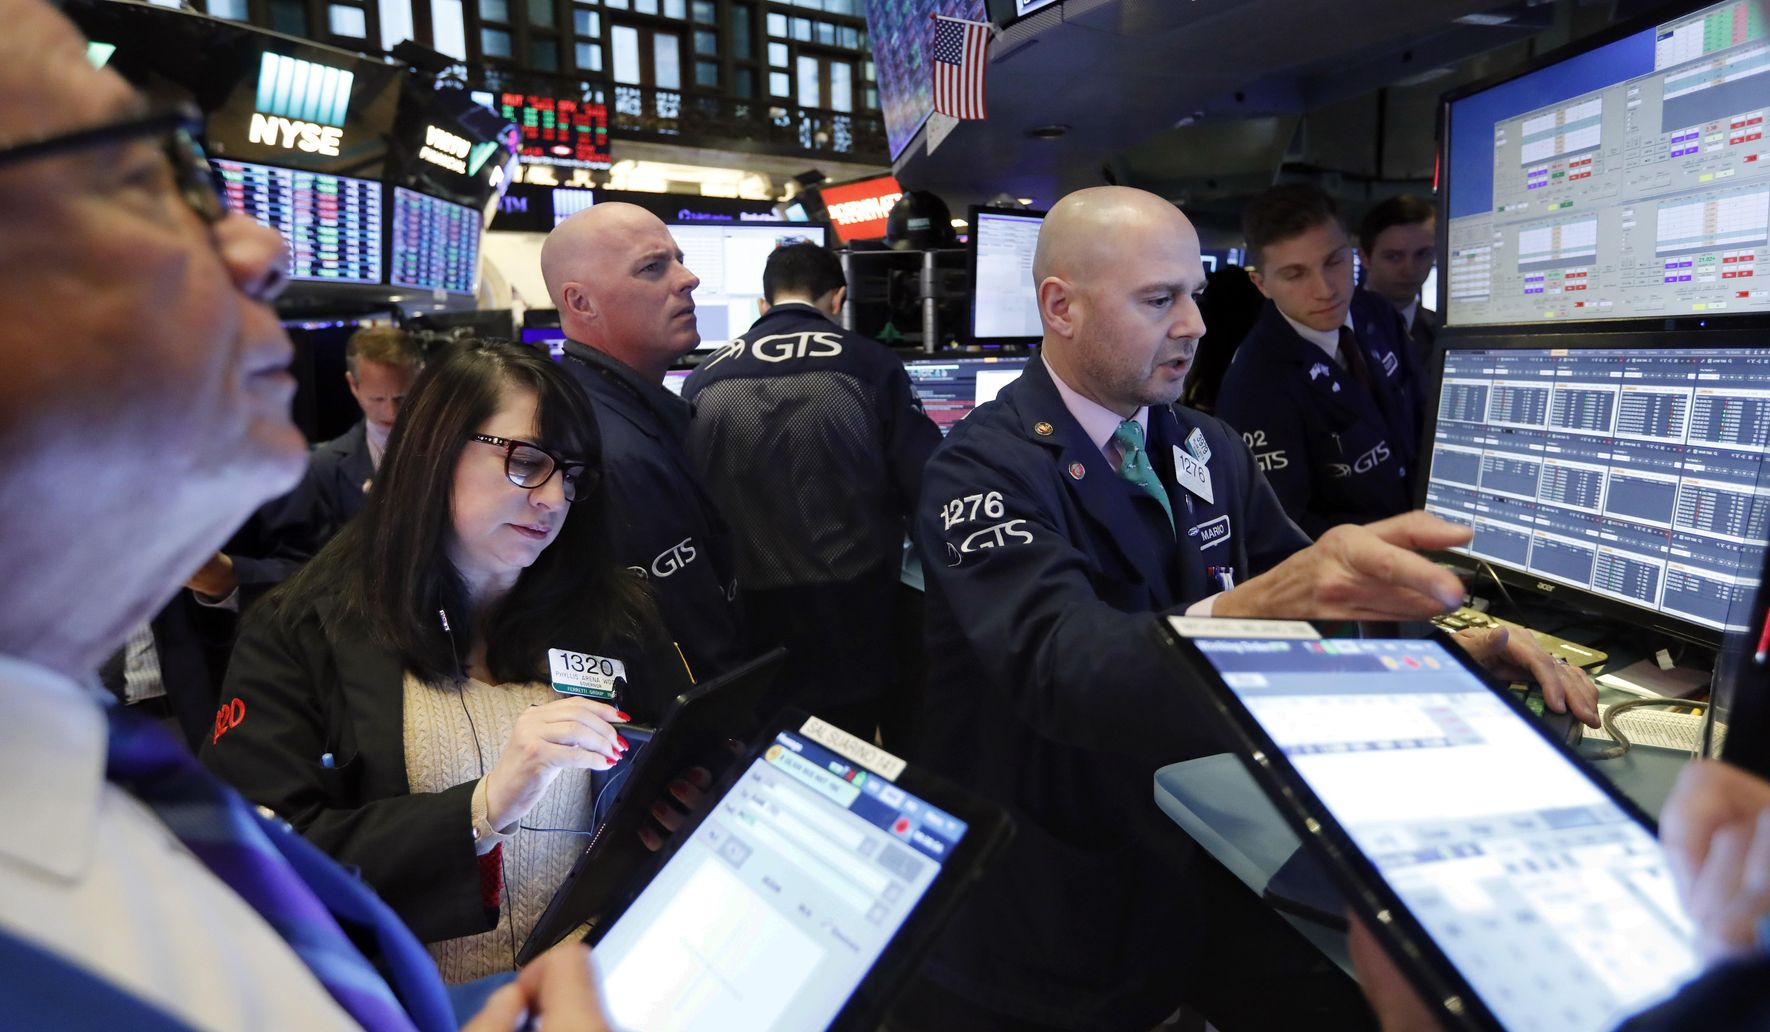 New US-China trade worries pull stocks lower on Wall Street